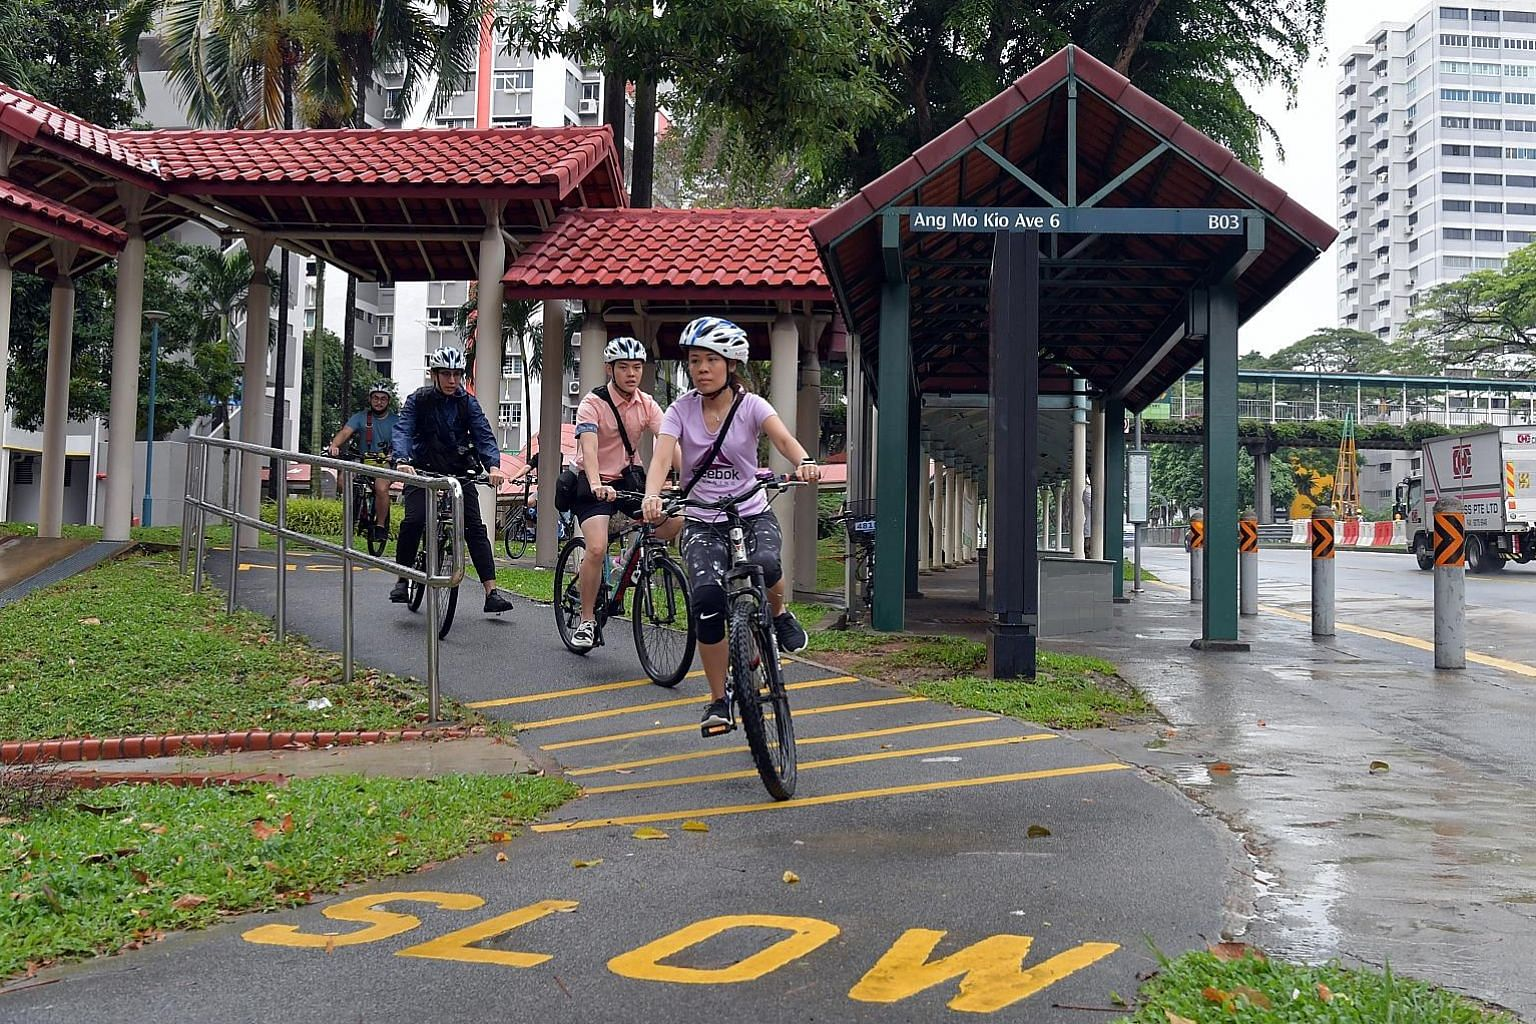 Ang Mo Kio, which was designated as a walking and cycling town in 2014, will have 20km of cycling paths by 2022. This would make the network one of the longest in residential towns in Singapore. Senior Minister of State for Transport Lam Pin Min said